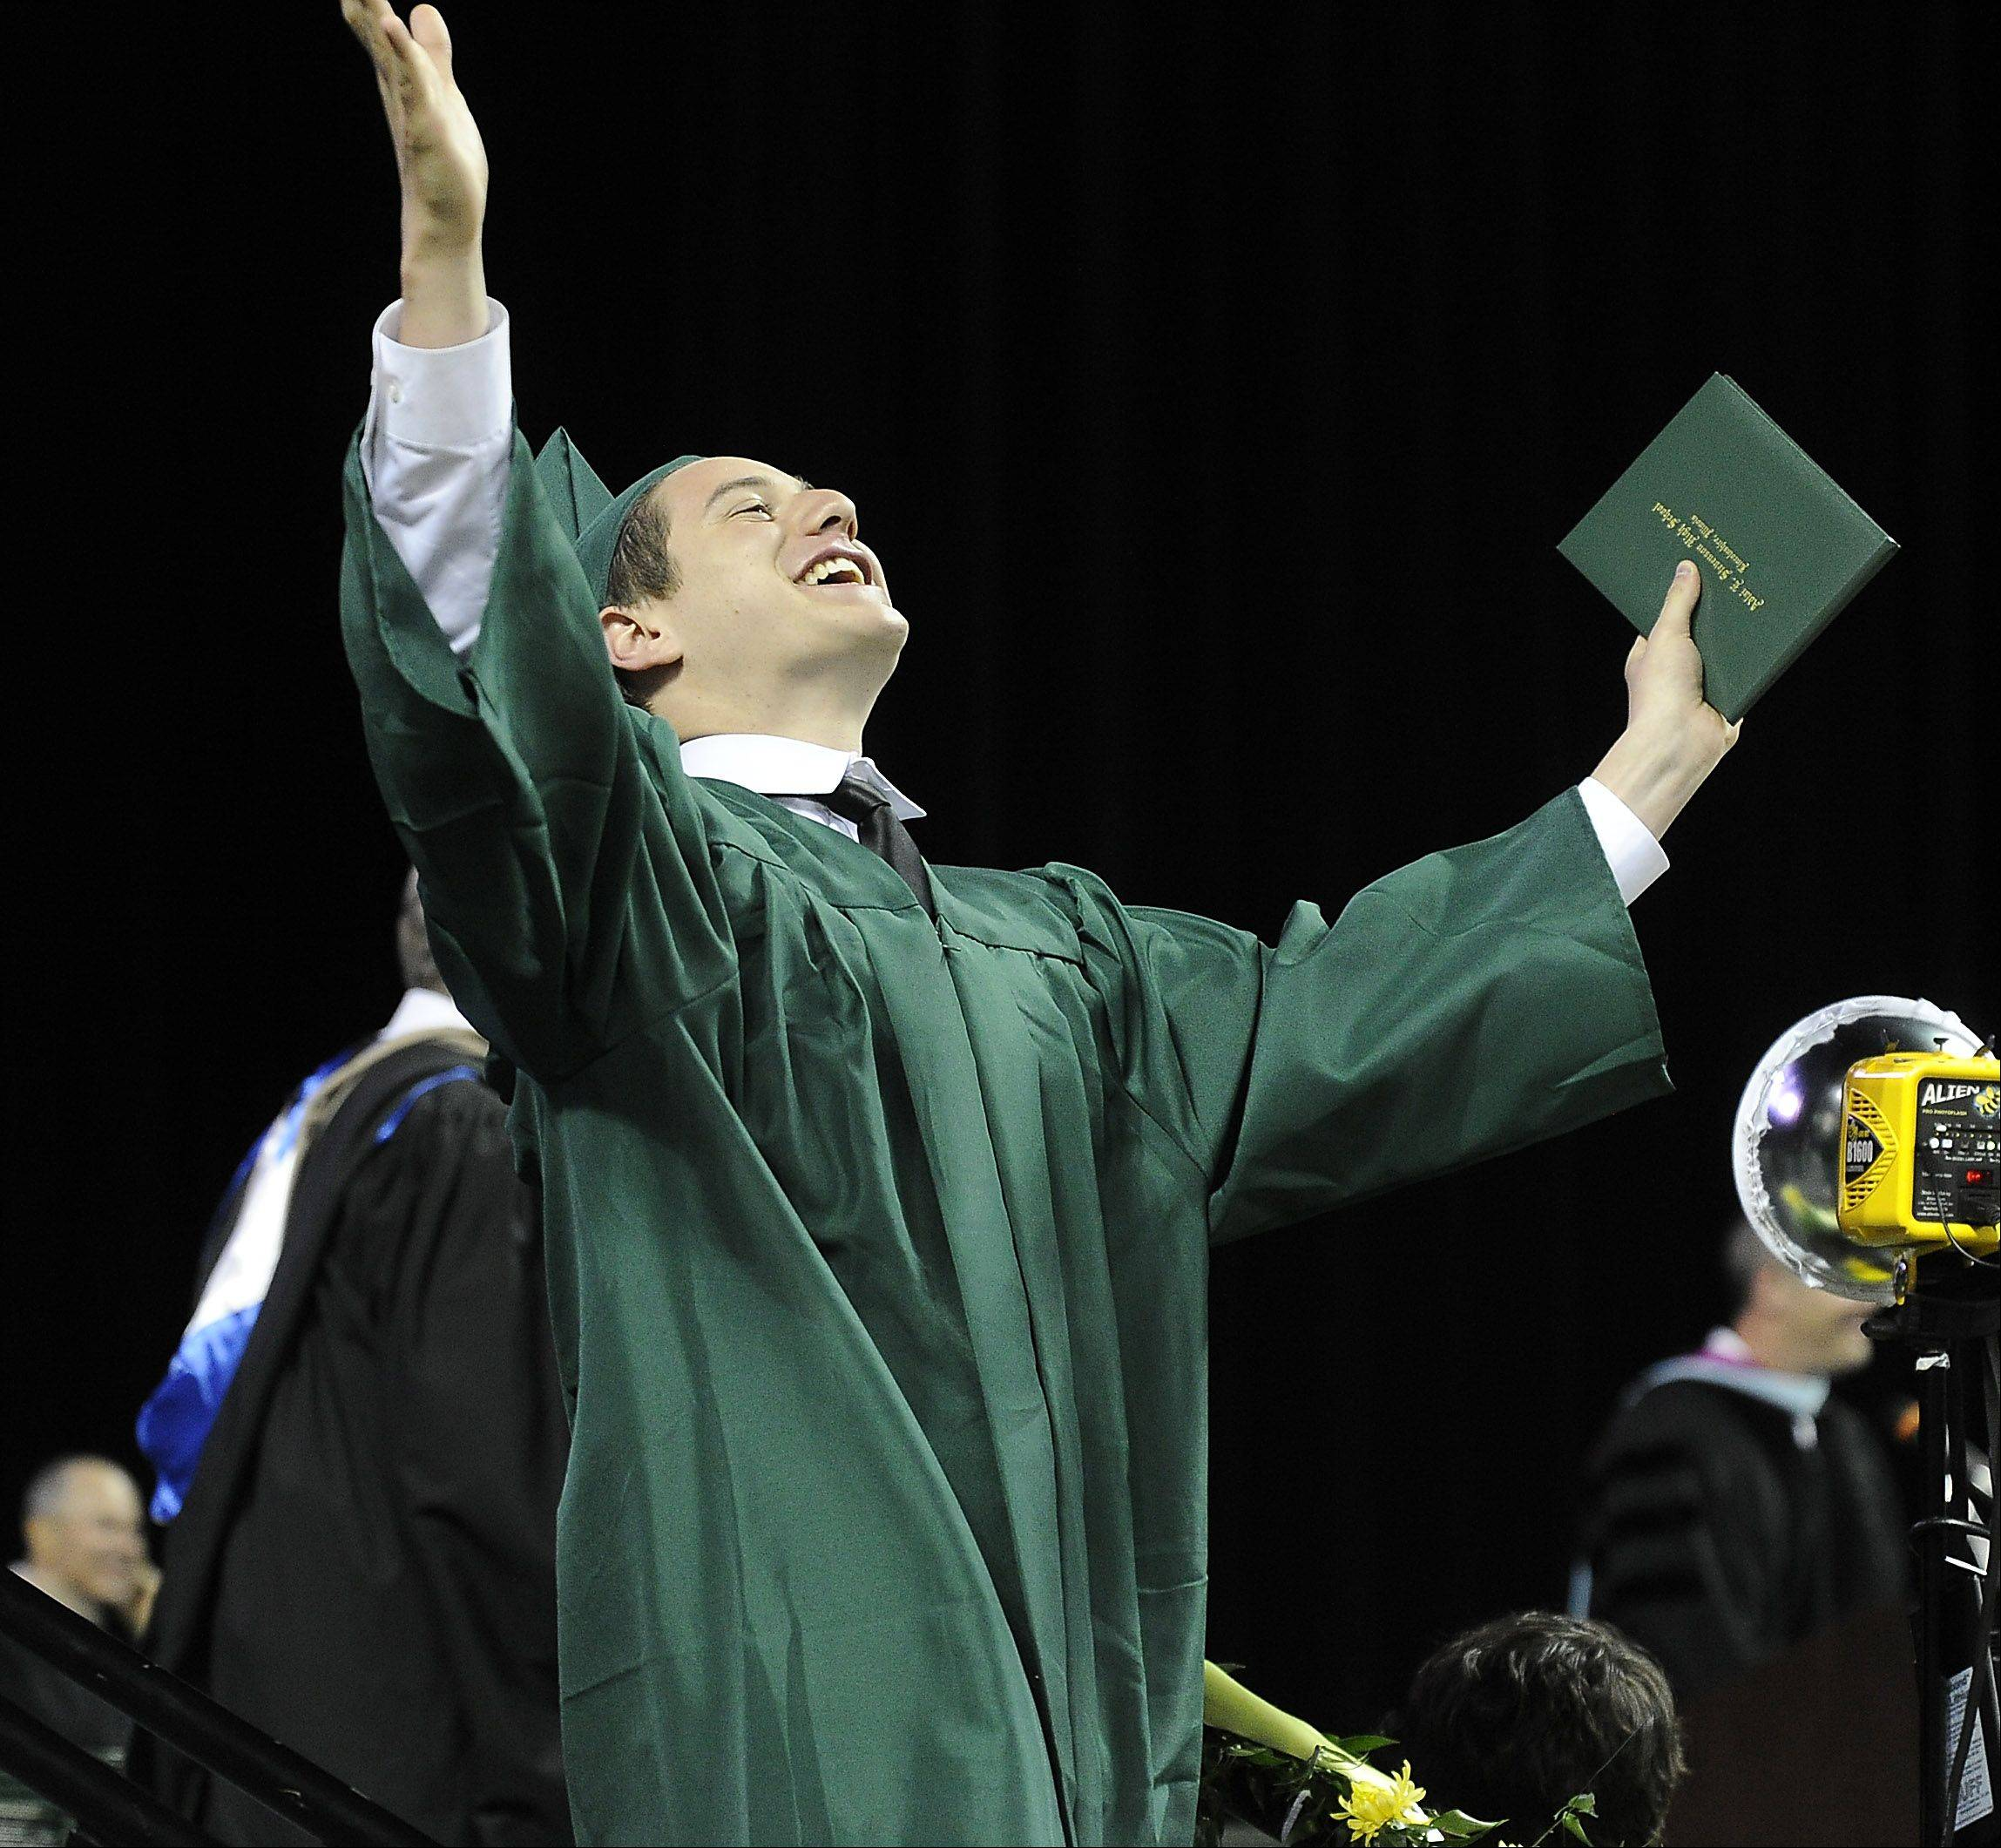 Daniel Shtivelberg ,18, of Buffalo Grove celebrates after receiving his diploma.